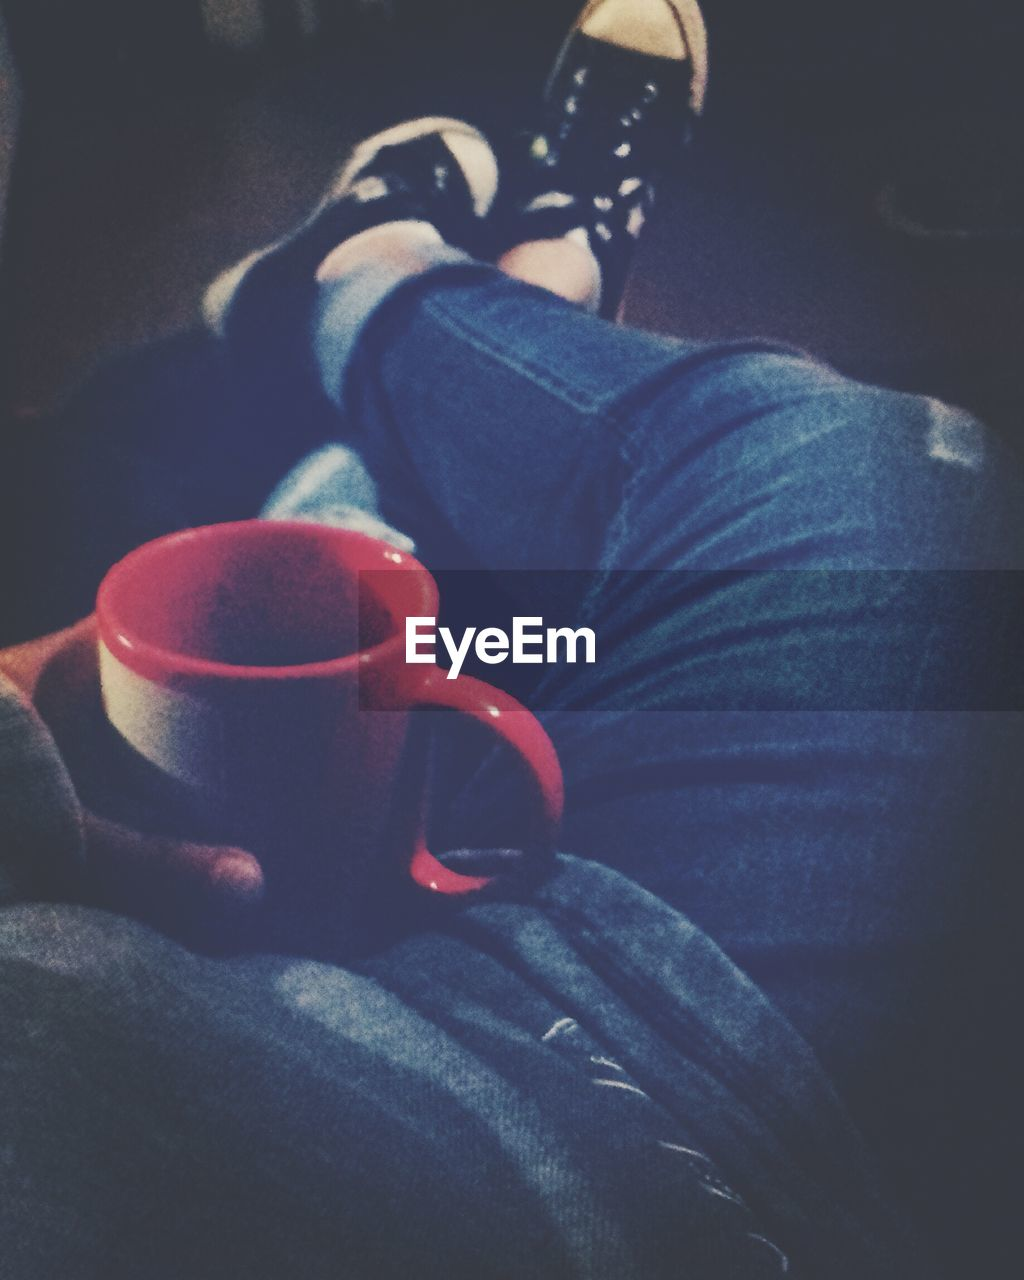 coffee cup, coffee - drink, jeans, drink, one person, refreshment, human leg, cup, food and drink, real people, holding, human body part, low section, sitting, human hand, drinking, casual clothing, indoors, tea - hot drink, red, close-up, lifestyles, men, women, relaxation, day, freshness, adult, people